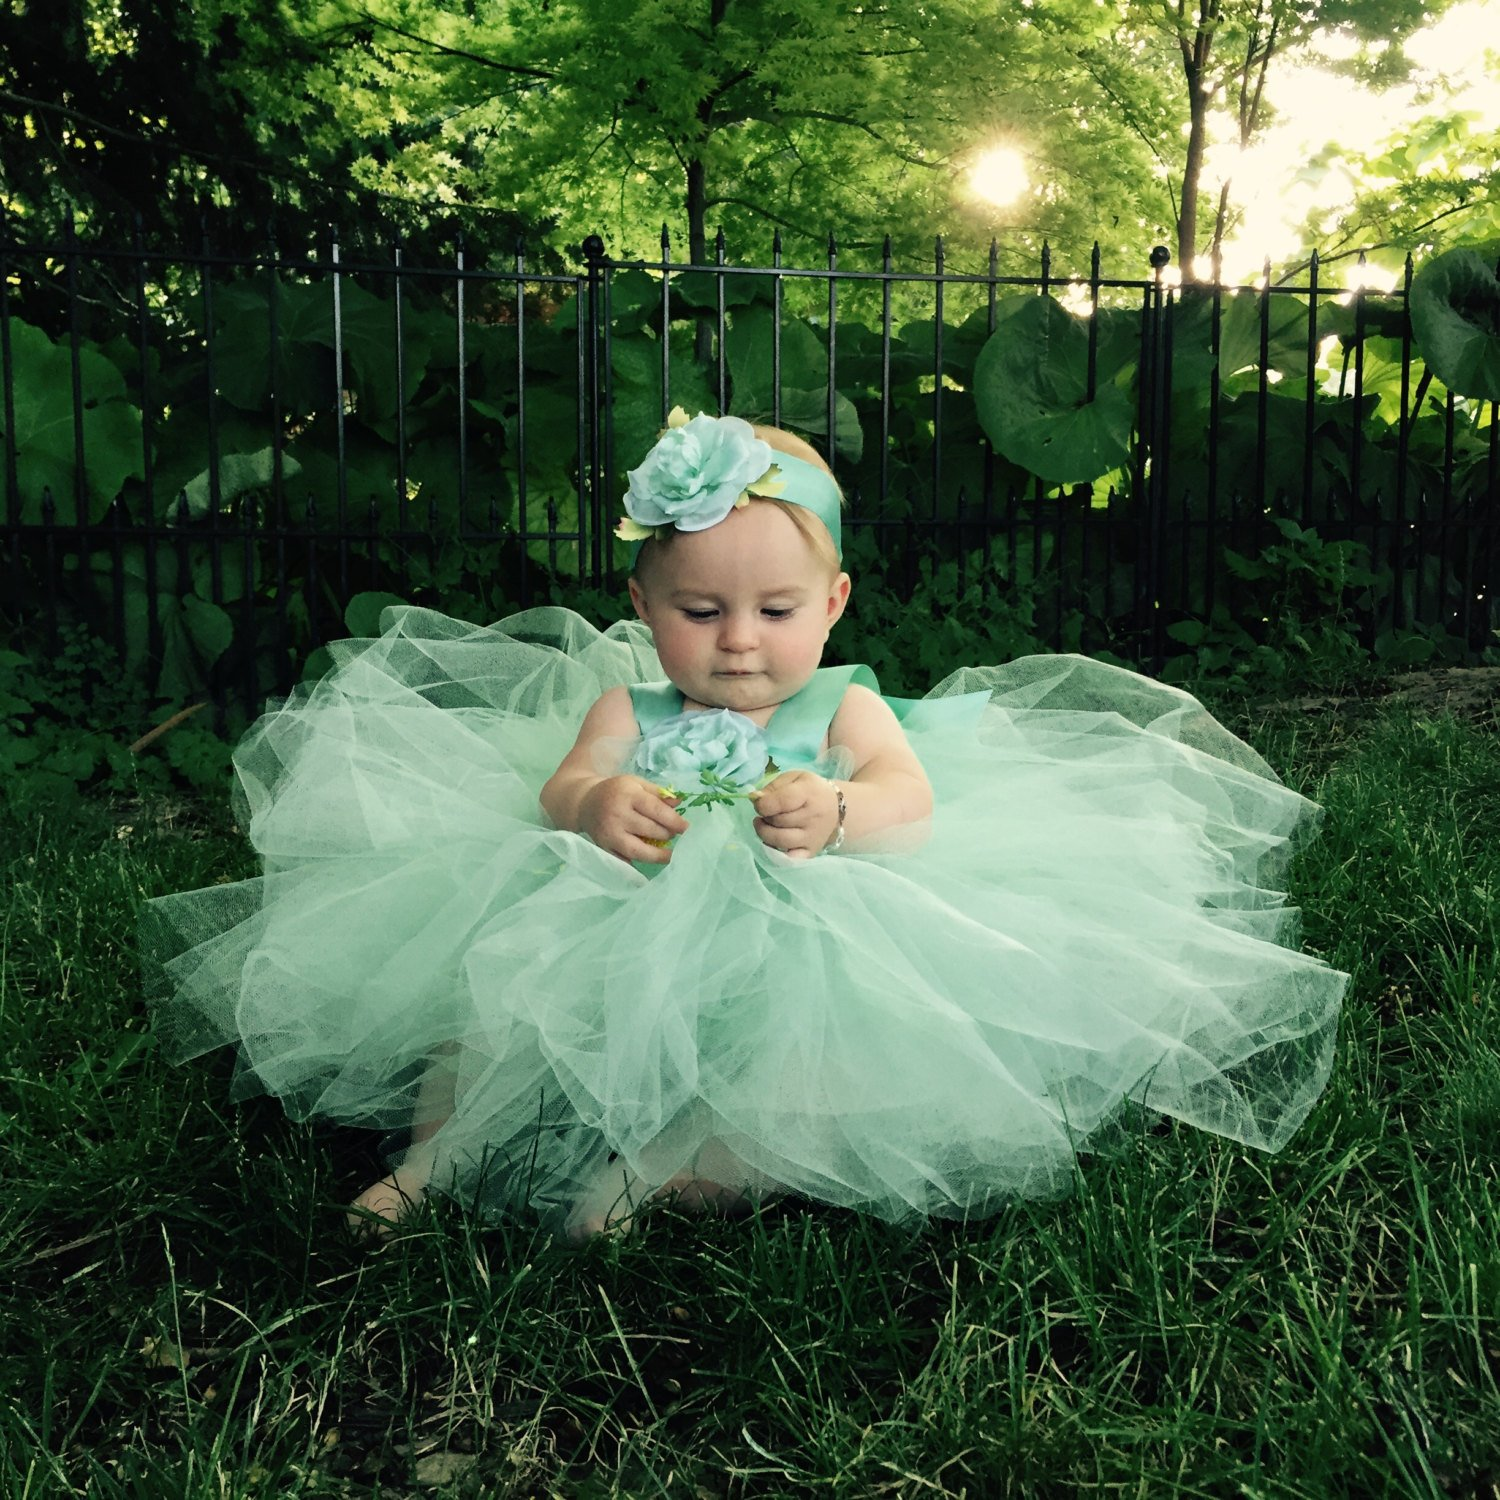 a45c1f784 ... Baby Blessing Outfit Christening Gown Girls First Birthday Tutu Set  Designer Flowergirl Tulle Special Occasion Dresses. Previous